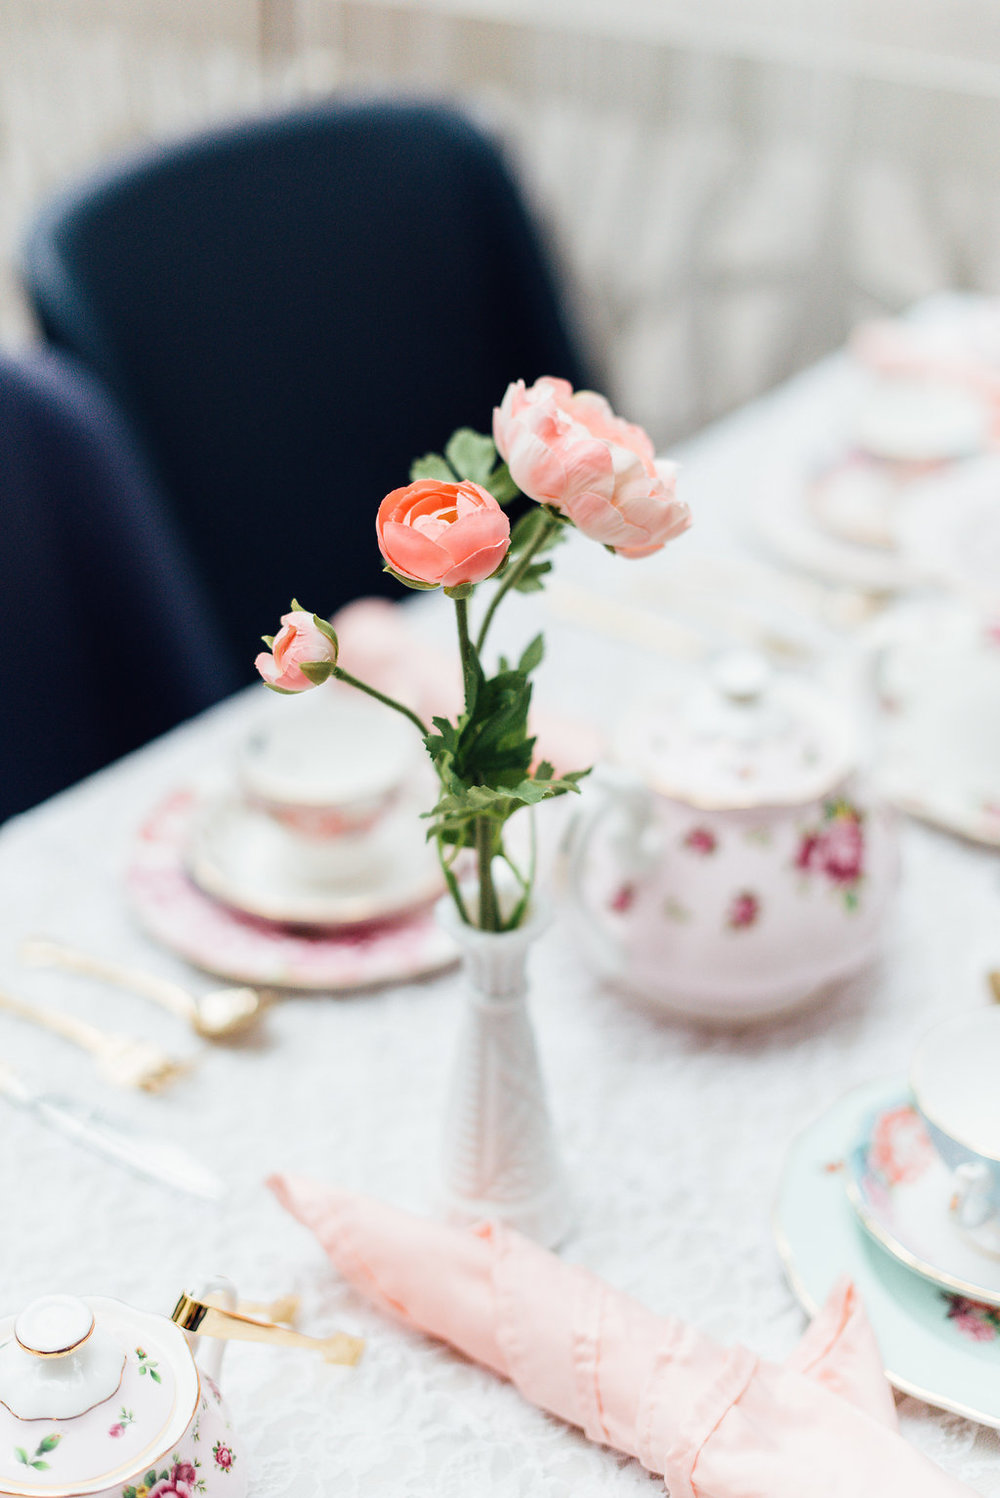 Collections - RoyalTea Party Events Inc.